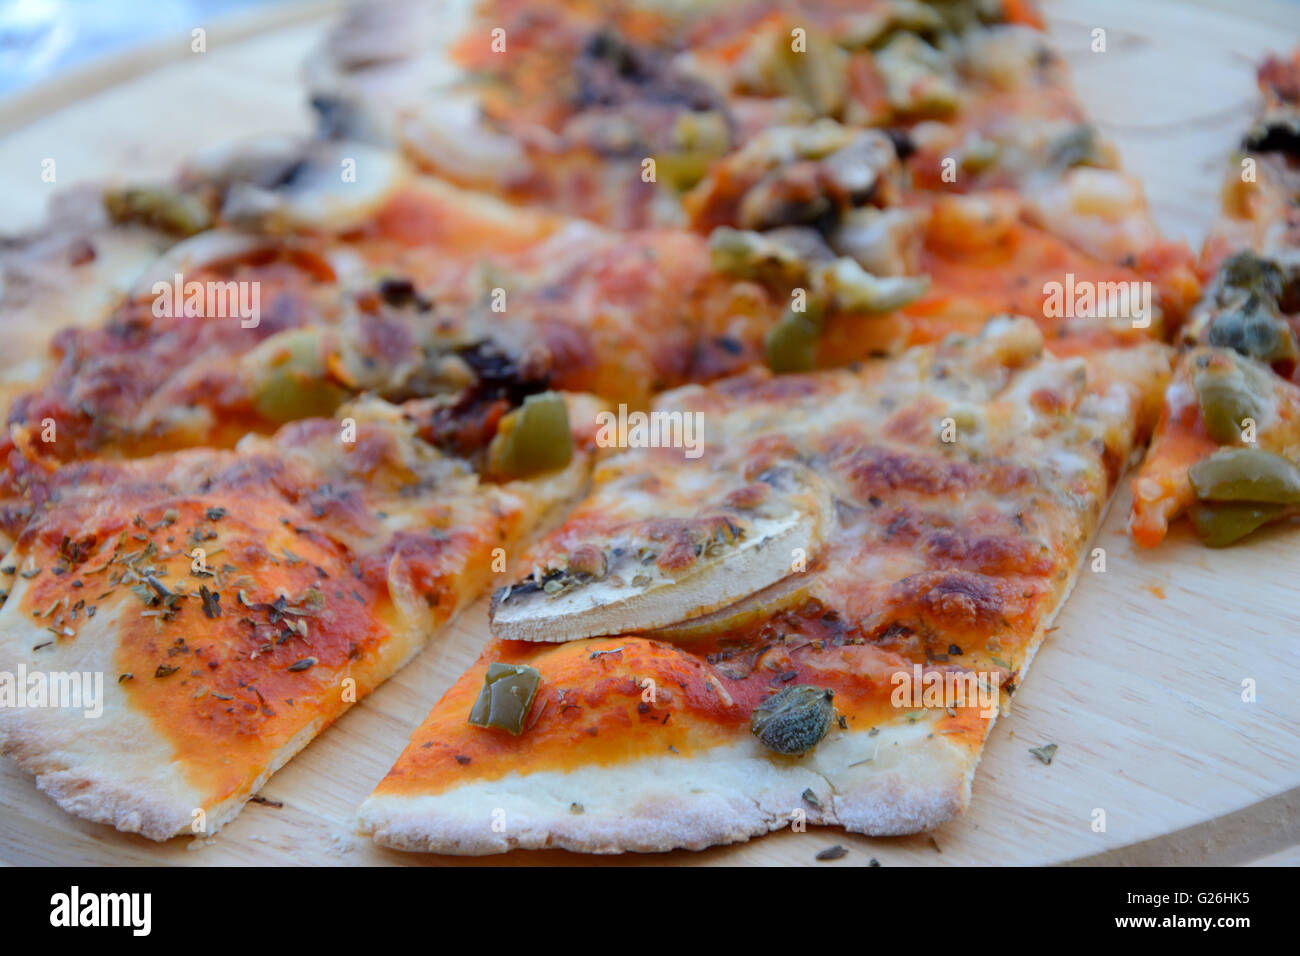 Pizza on wooden plate - close up - Stock Image